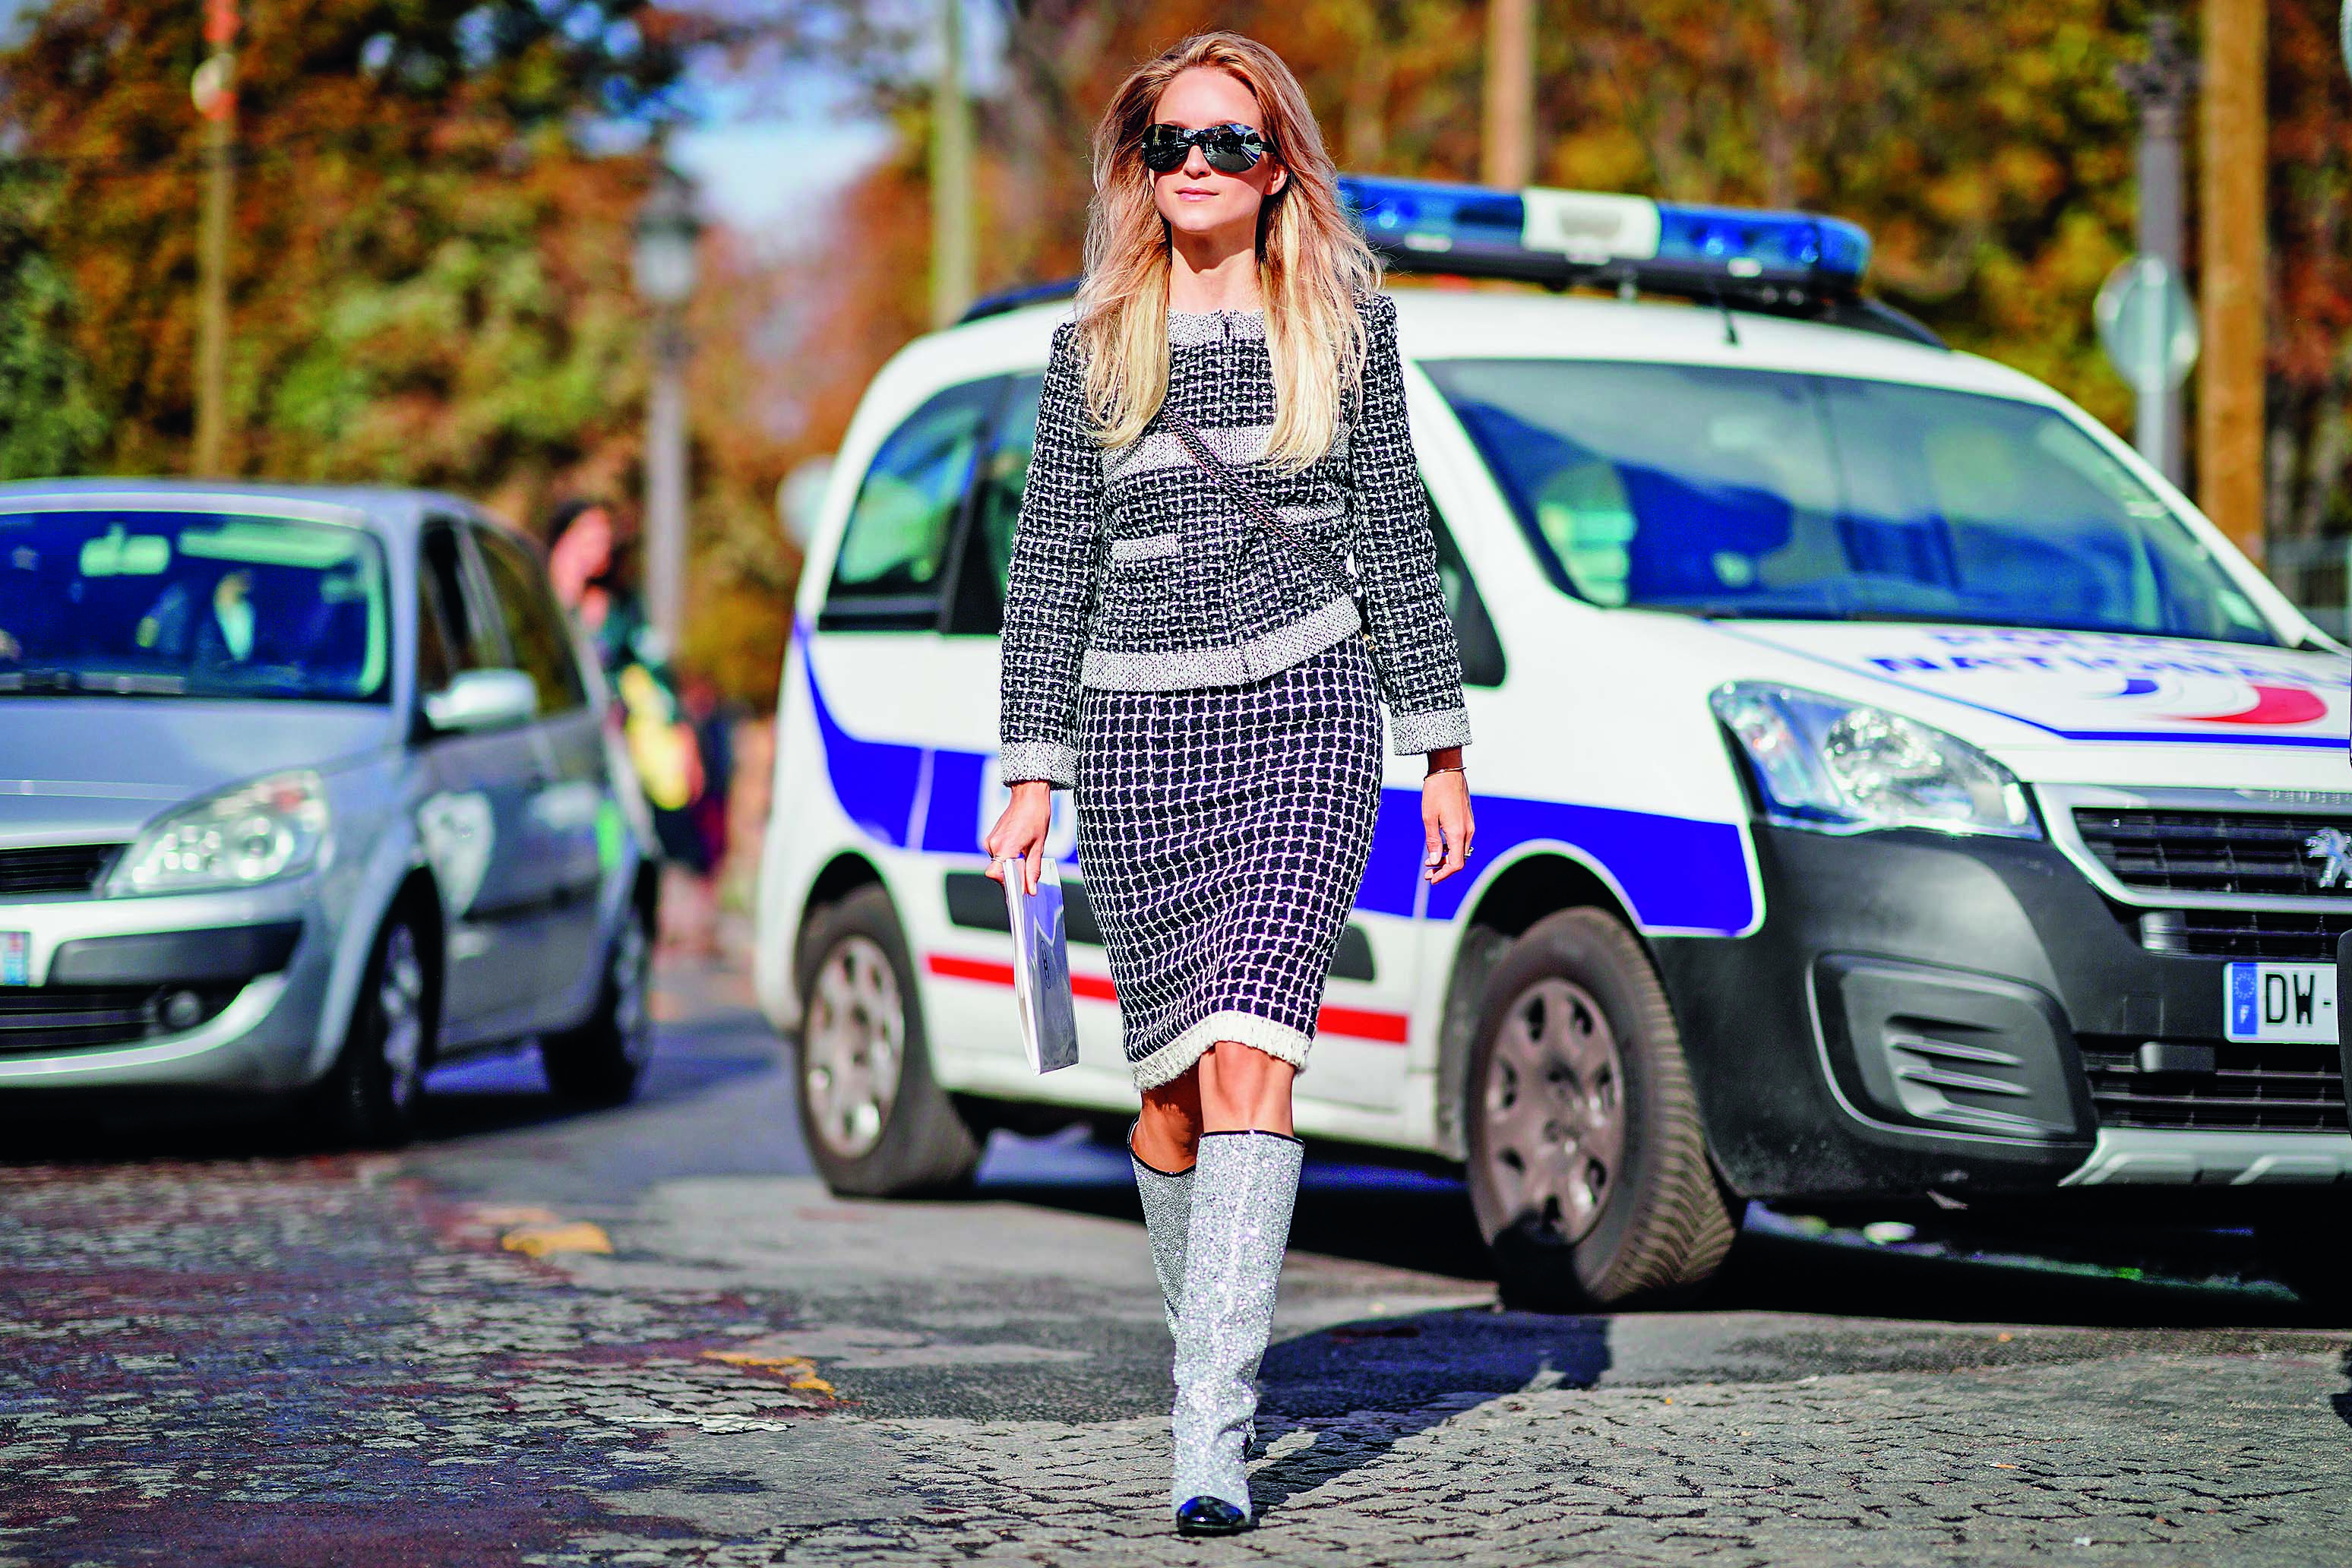 PARIS, FRANCE - OCTOBER 03:  Charlotte Groeneveld, outside Chanel, during Paris Fashion Week Womenswear Spring/Summer 2018, on October 3, 2017 in Paris, France.  (Photo by Edward Berthelot/Getty Images)